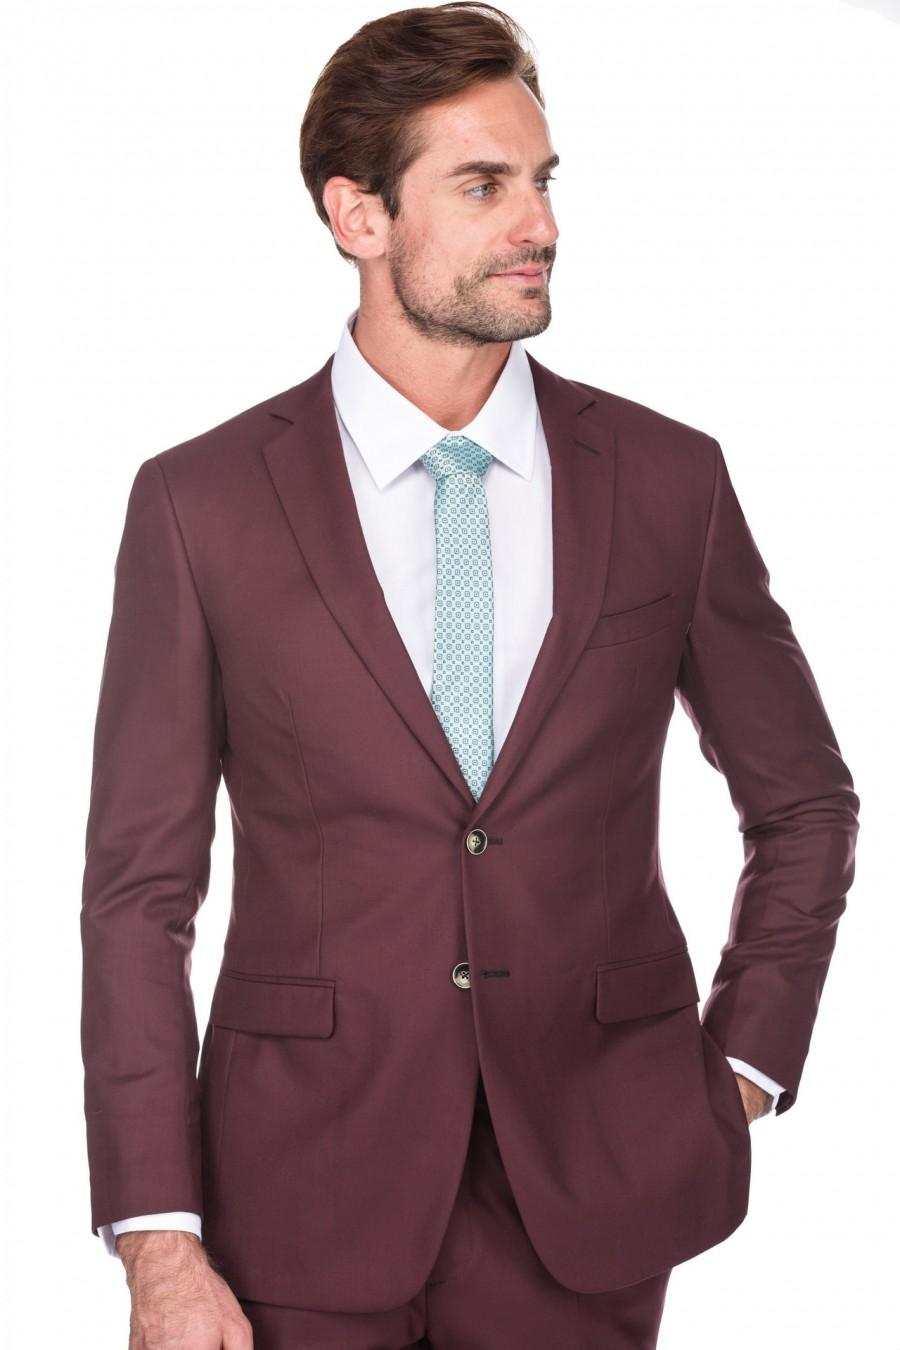 Wedding - Porto Filo Men's slim fit 2 pcs set suit,Burgundy color, wedding, party,jacket, pant,2 button,Single Breasted Vintage Suits